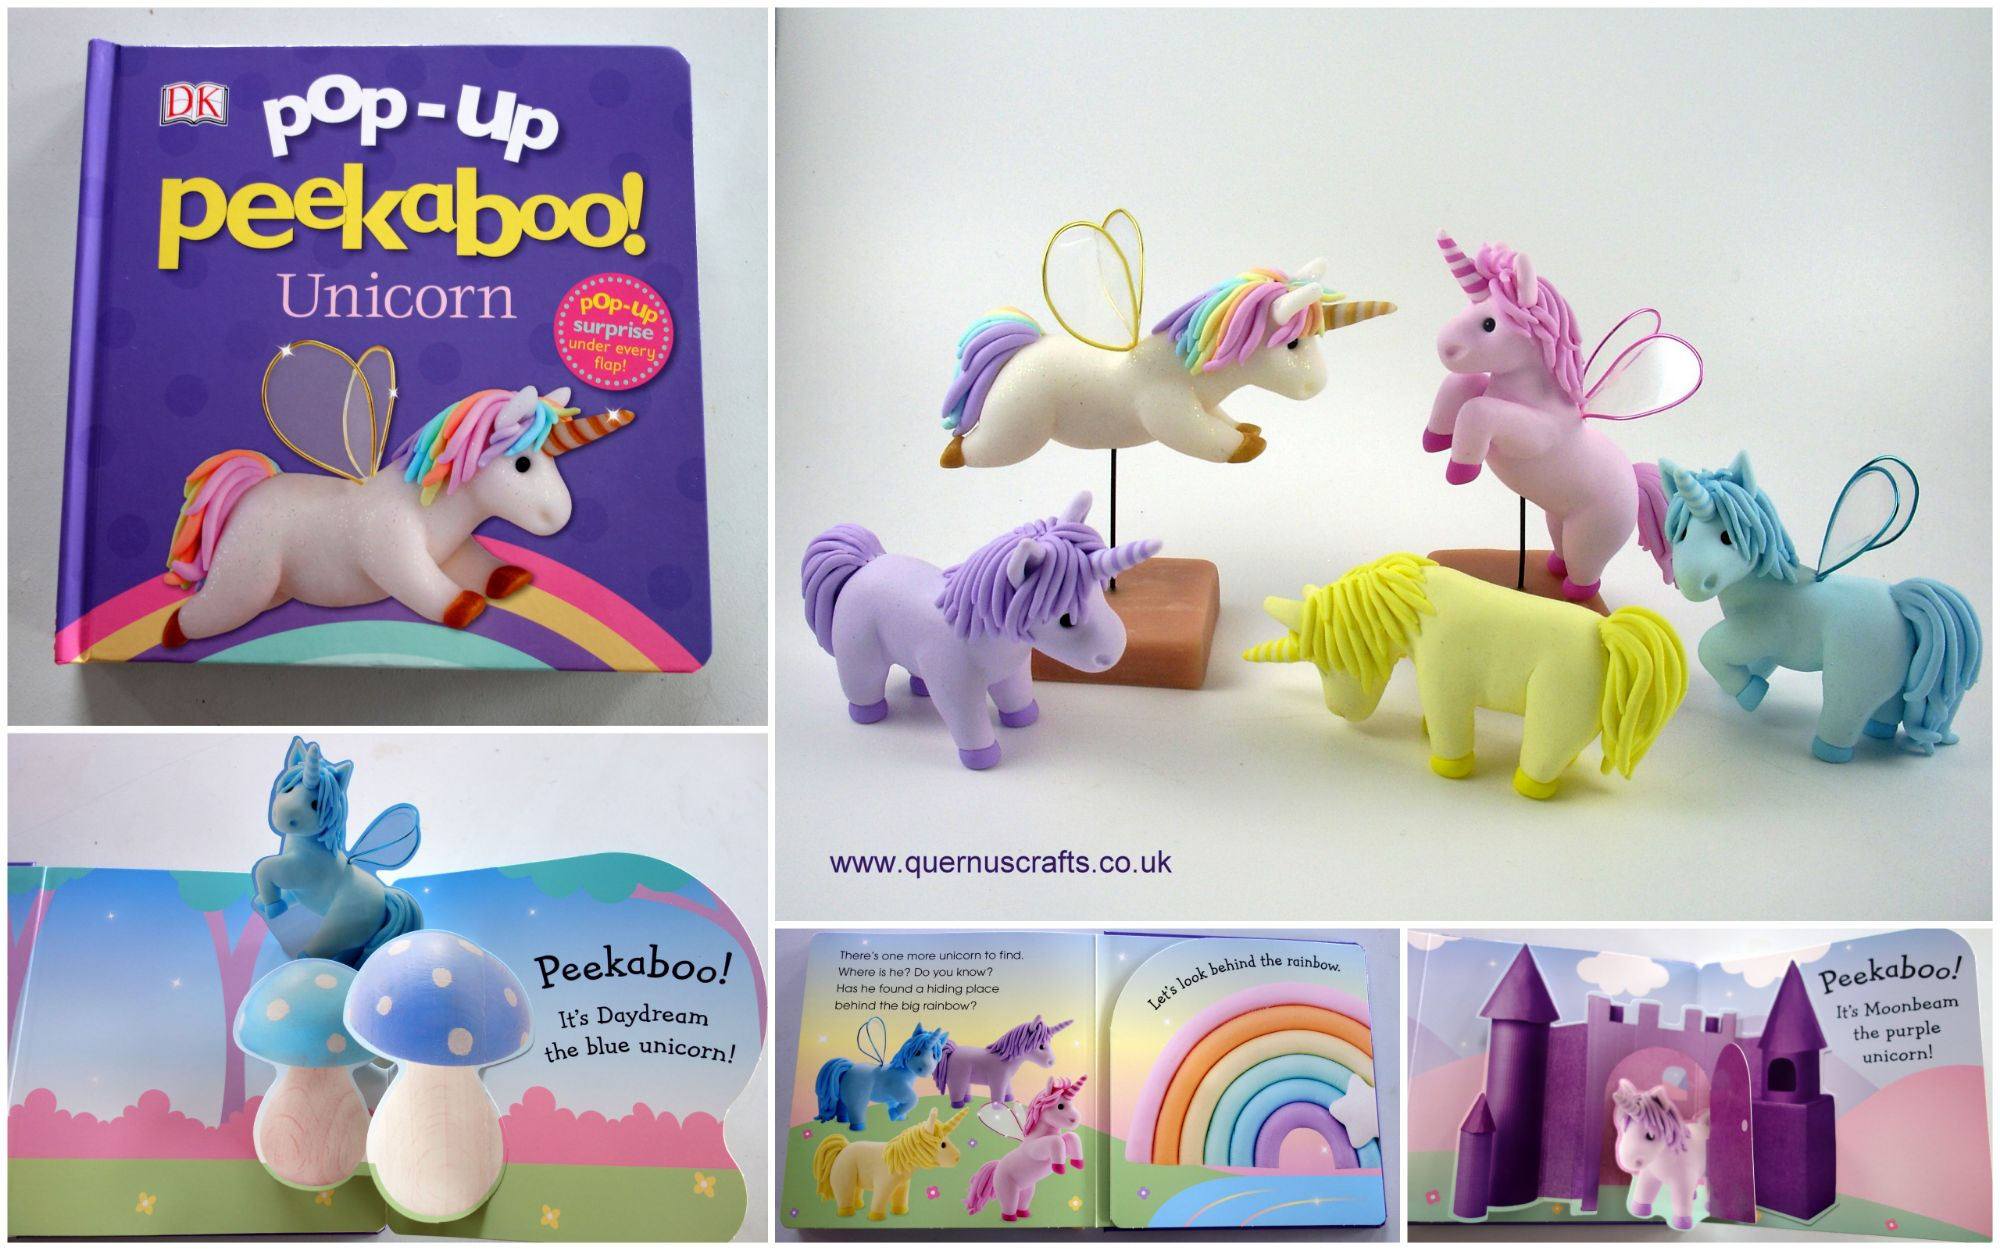 Pop-up Peekaboo Unicorn book